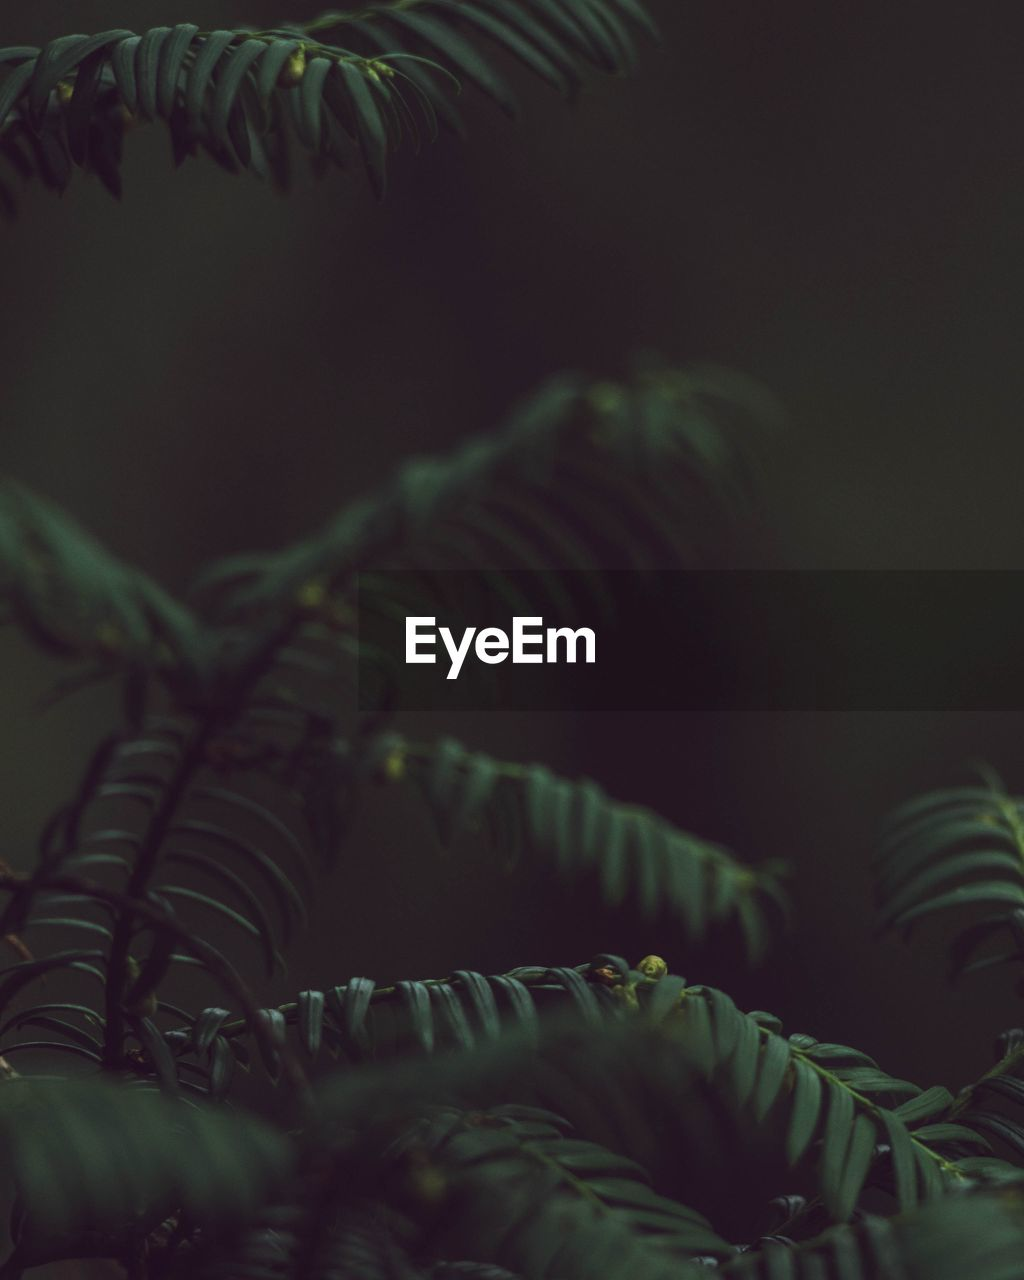 growth, plant, leaf, plant part, green color, close-up, no people, beauty in nature, selective focus, nature, fern, tree, tranquility, night, outdoors, natural pattern, freshness, vulnerability, fragility, botany